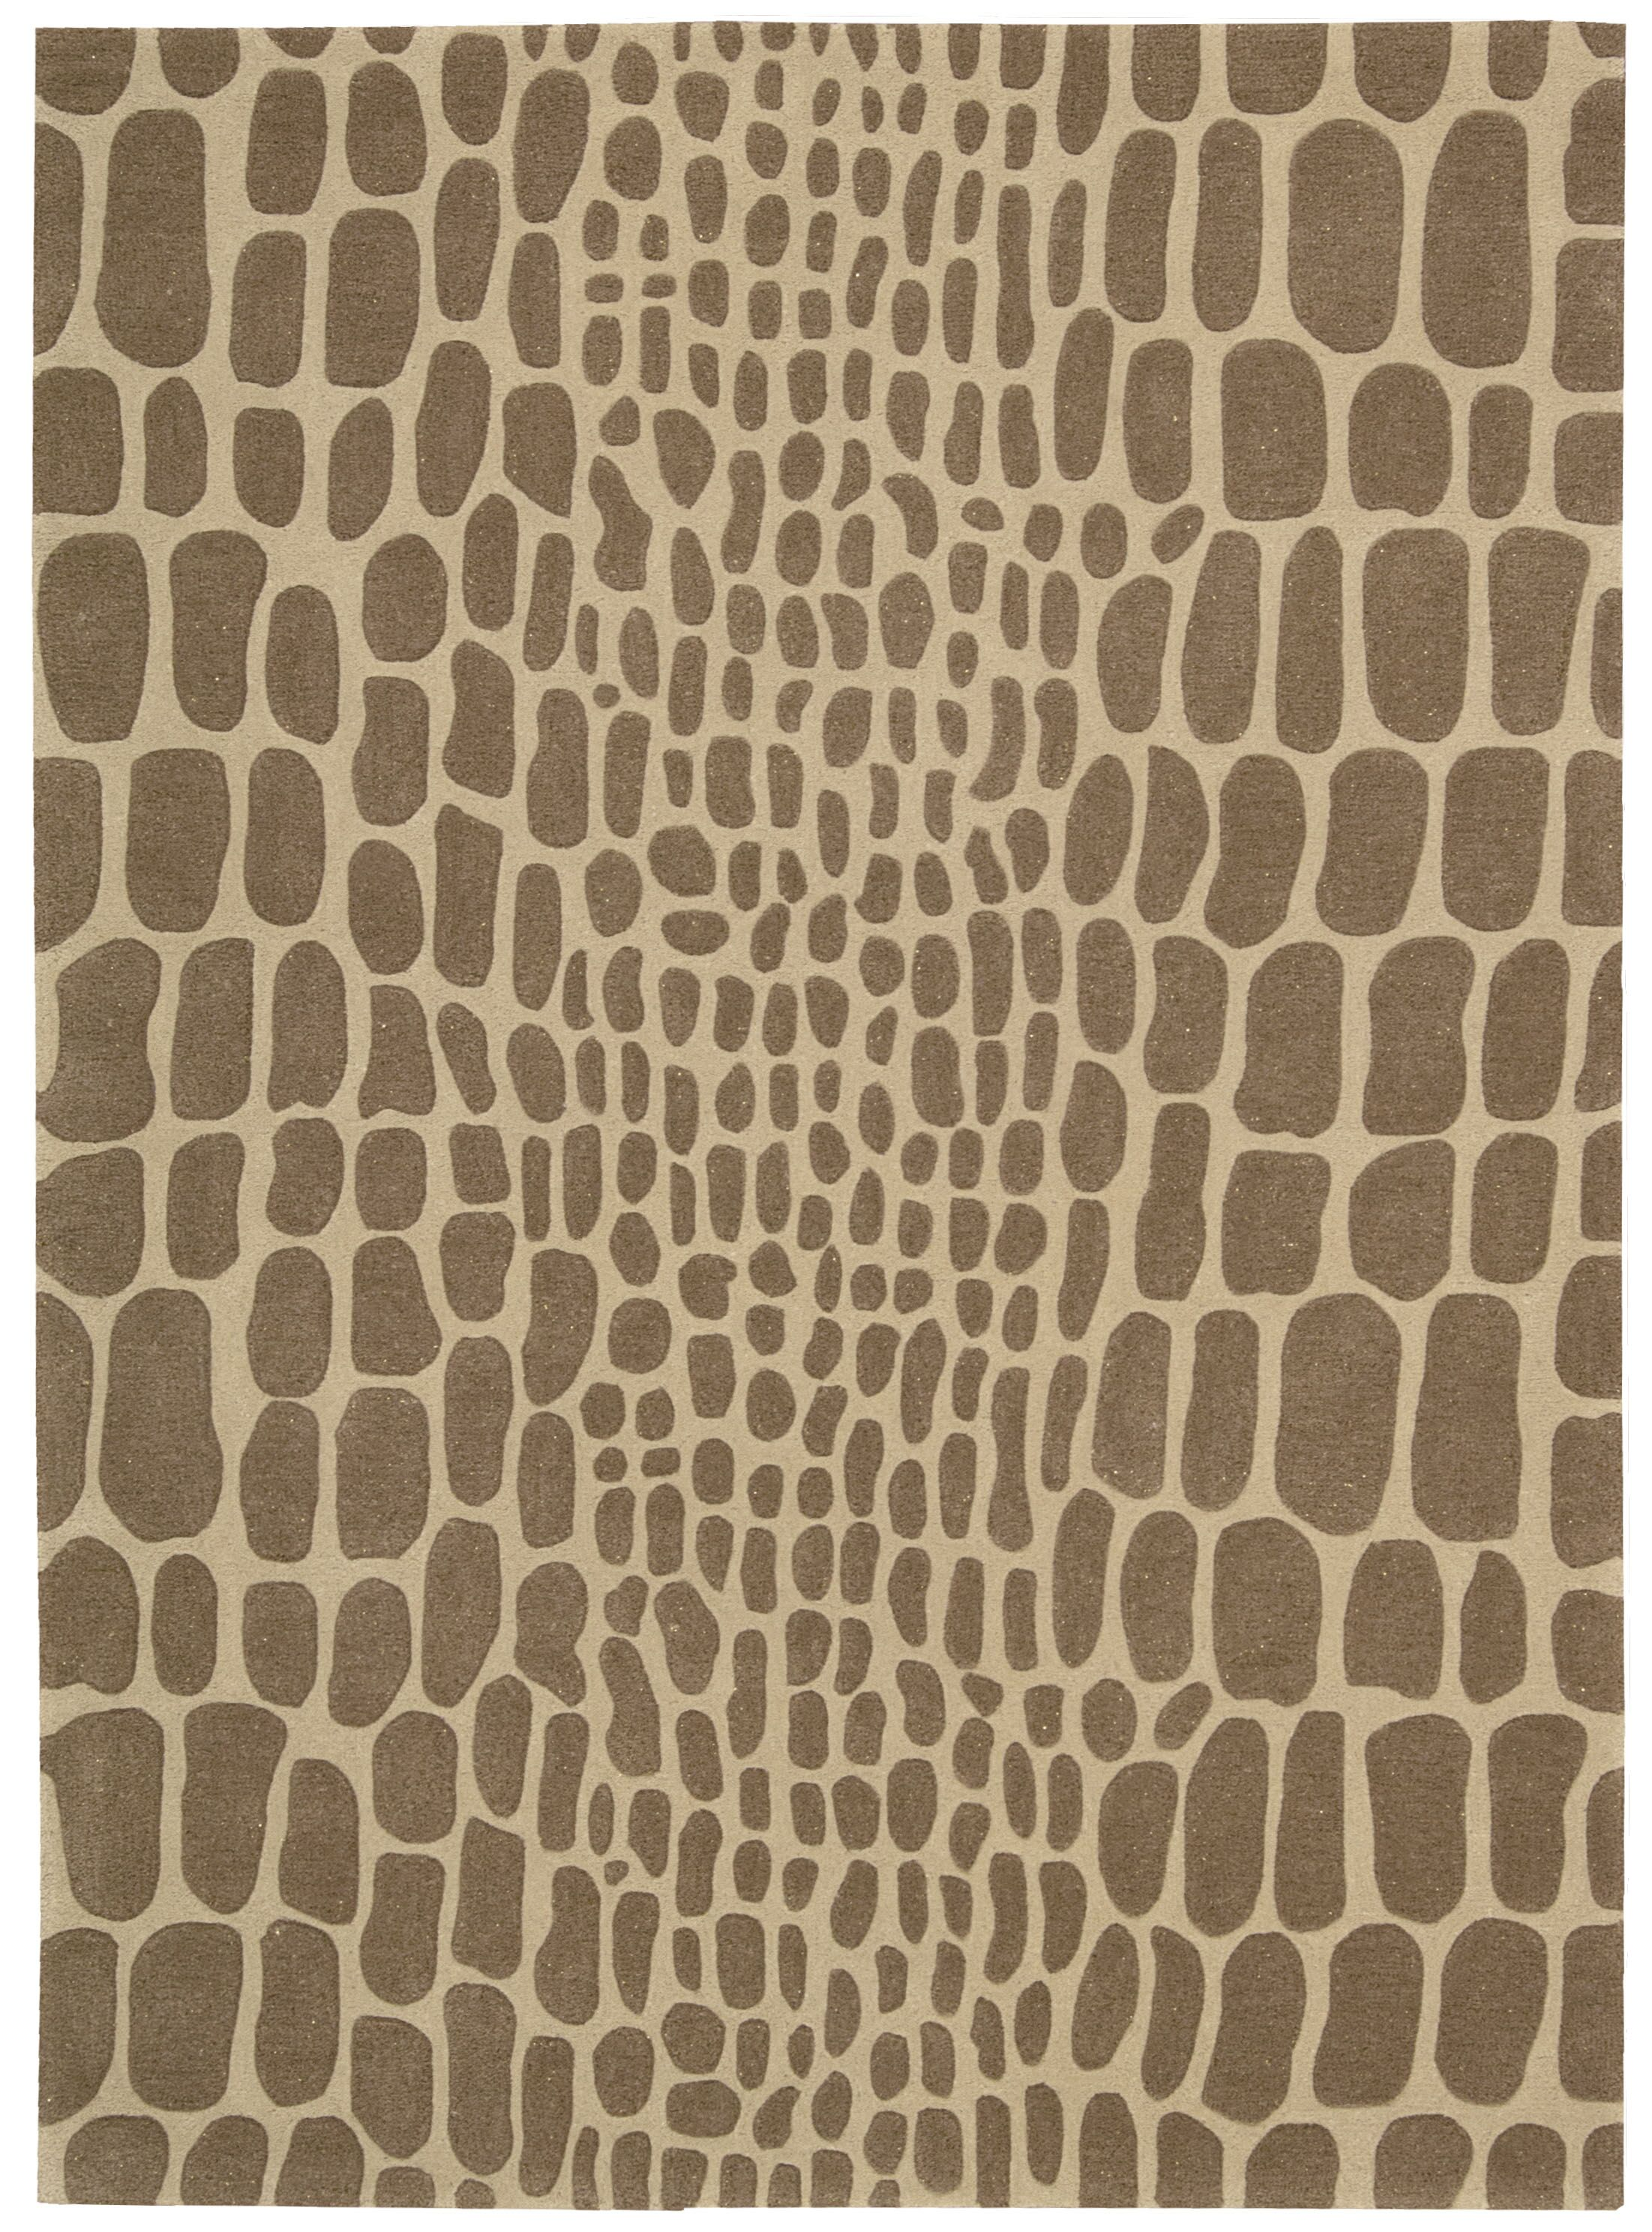 Zambiana Hand-Tufted Brown Area Rug Rug Size: Rectangle 9'3